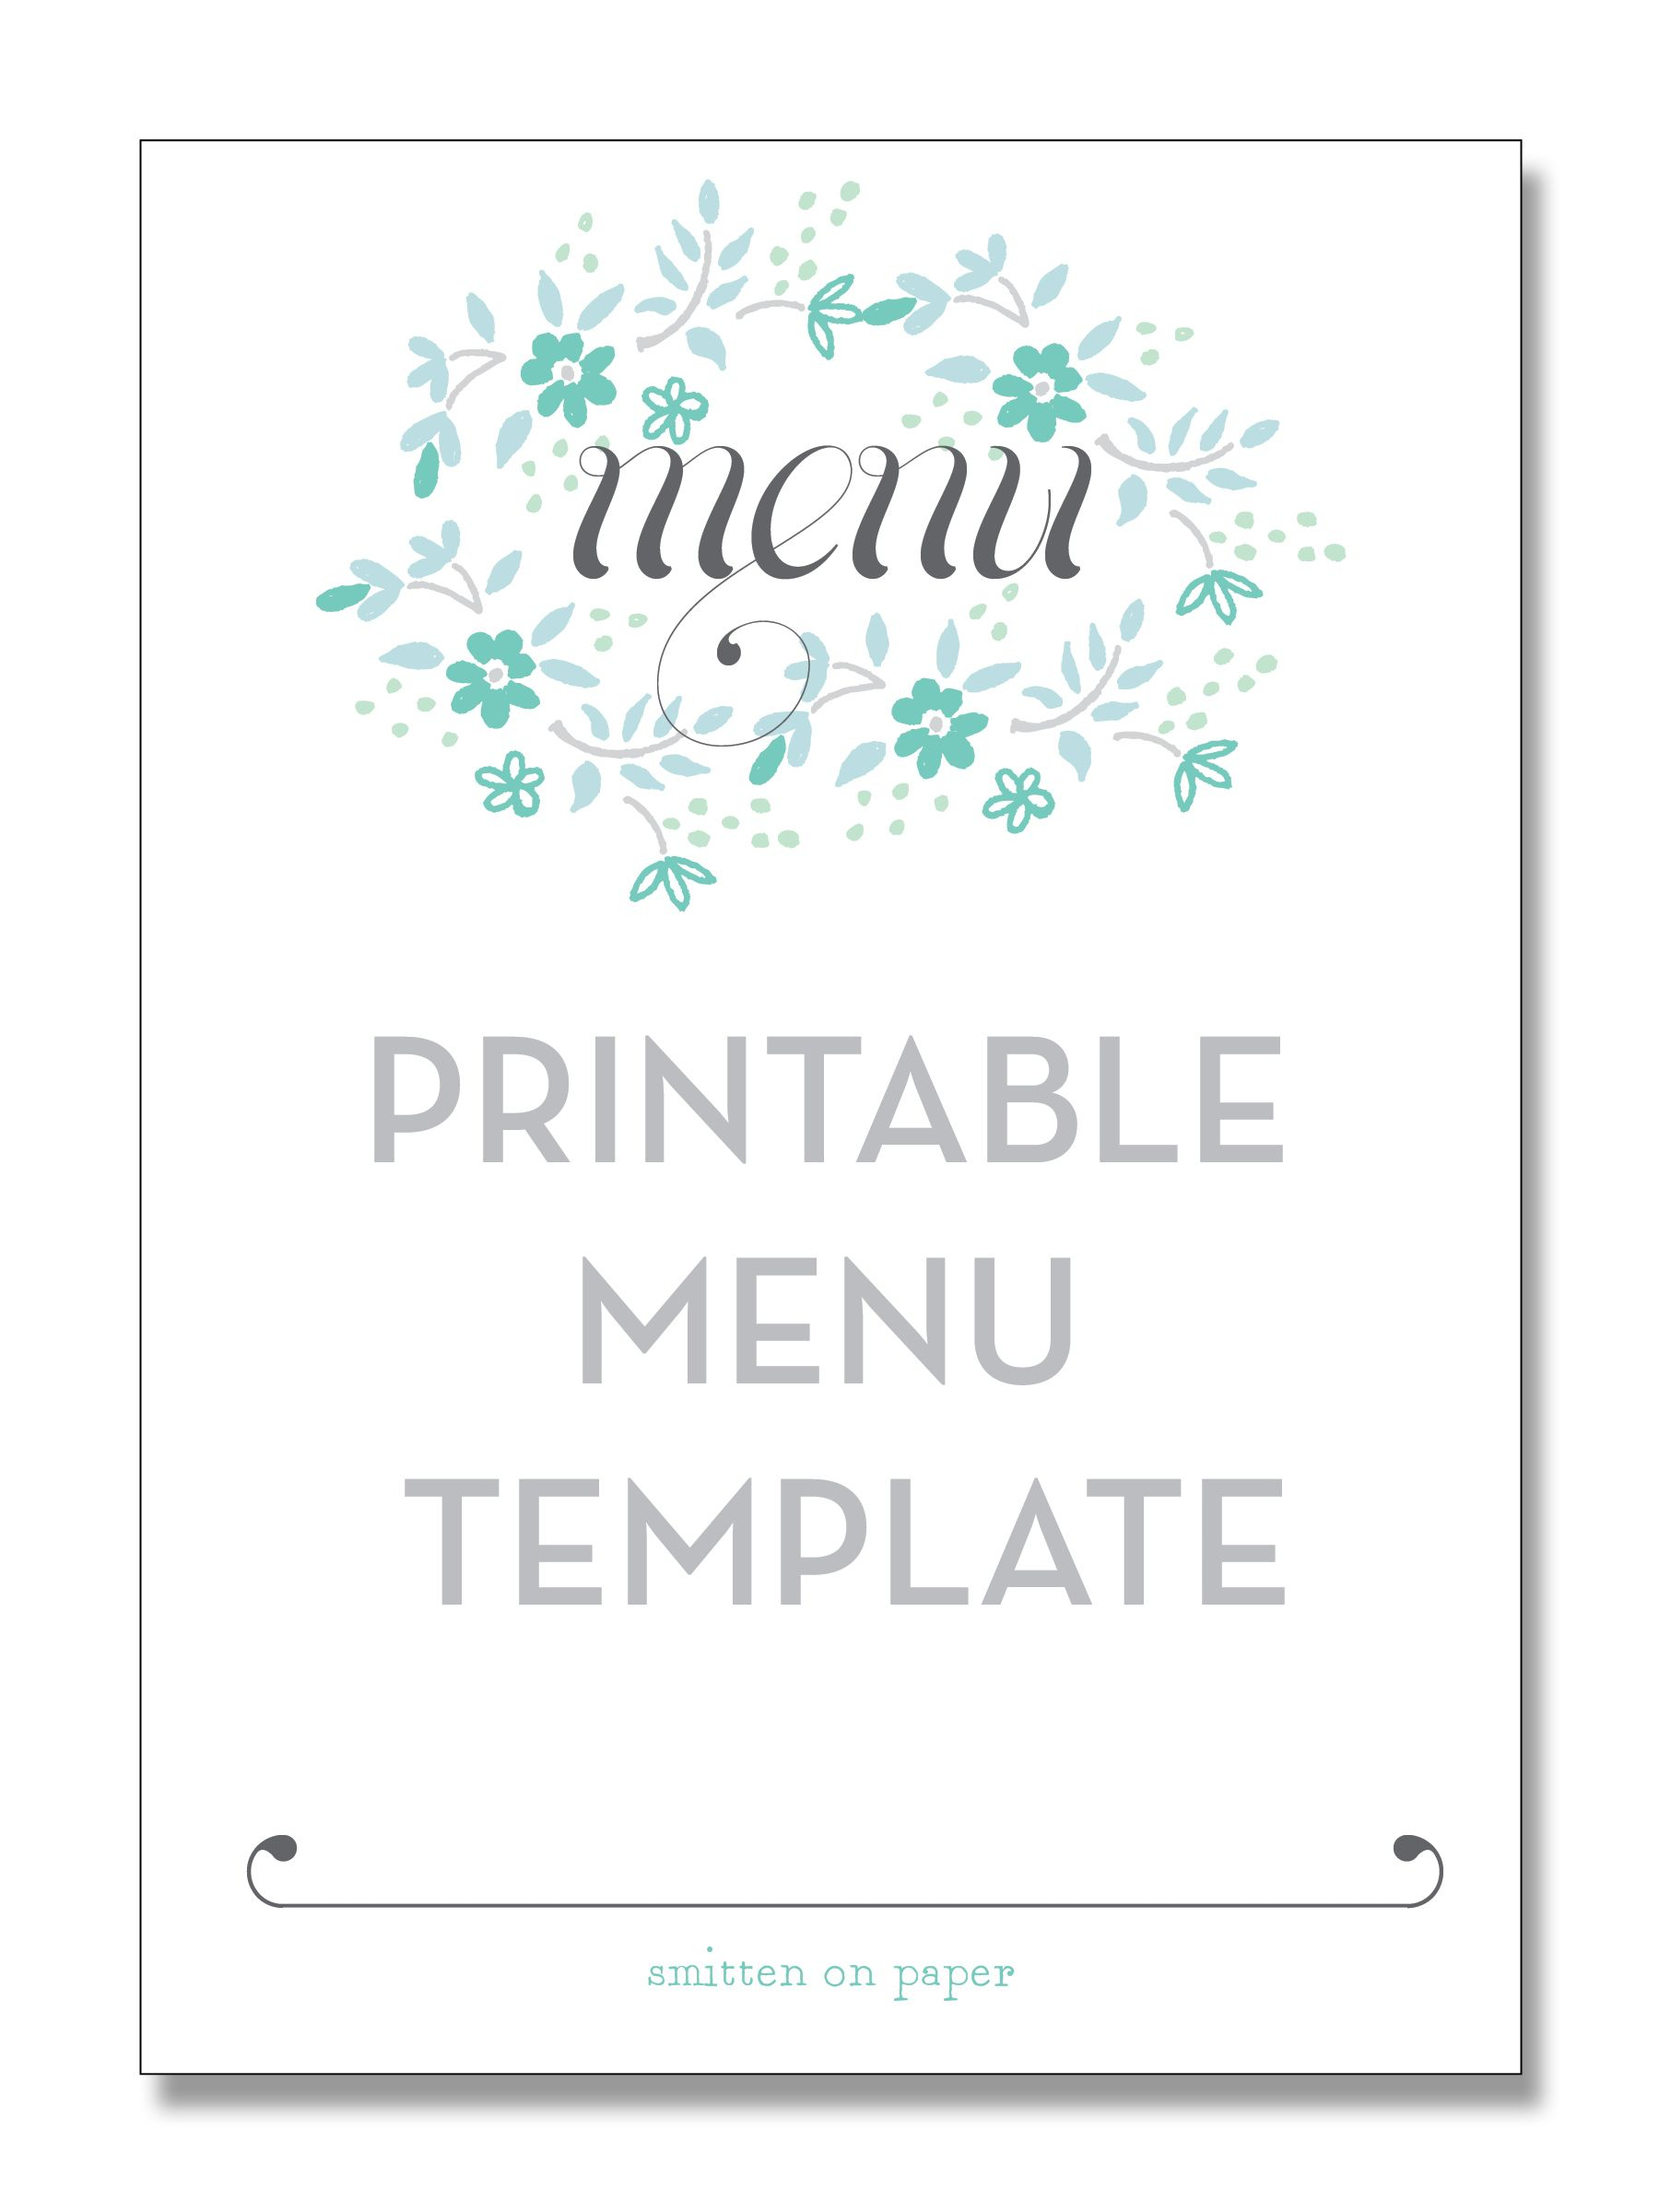 001 Template Ideas Free Printable Menu Templates ~ Ulyssesroom - Free Printable Menu